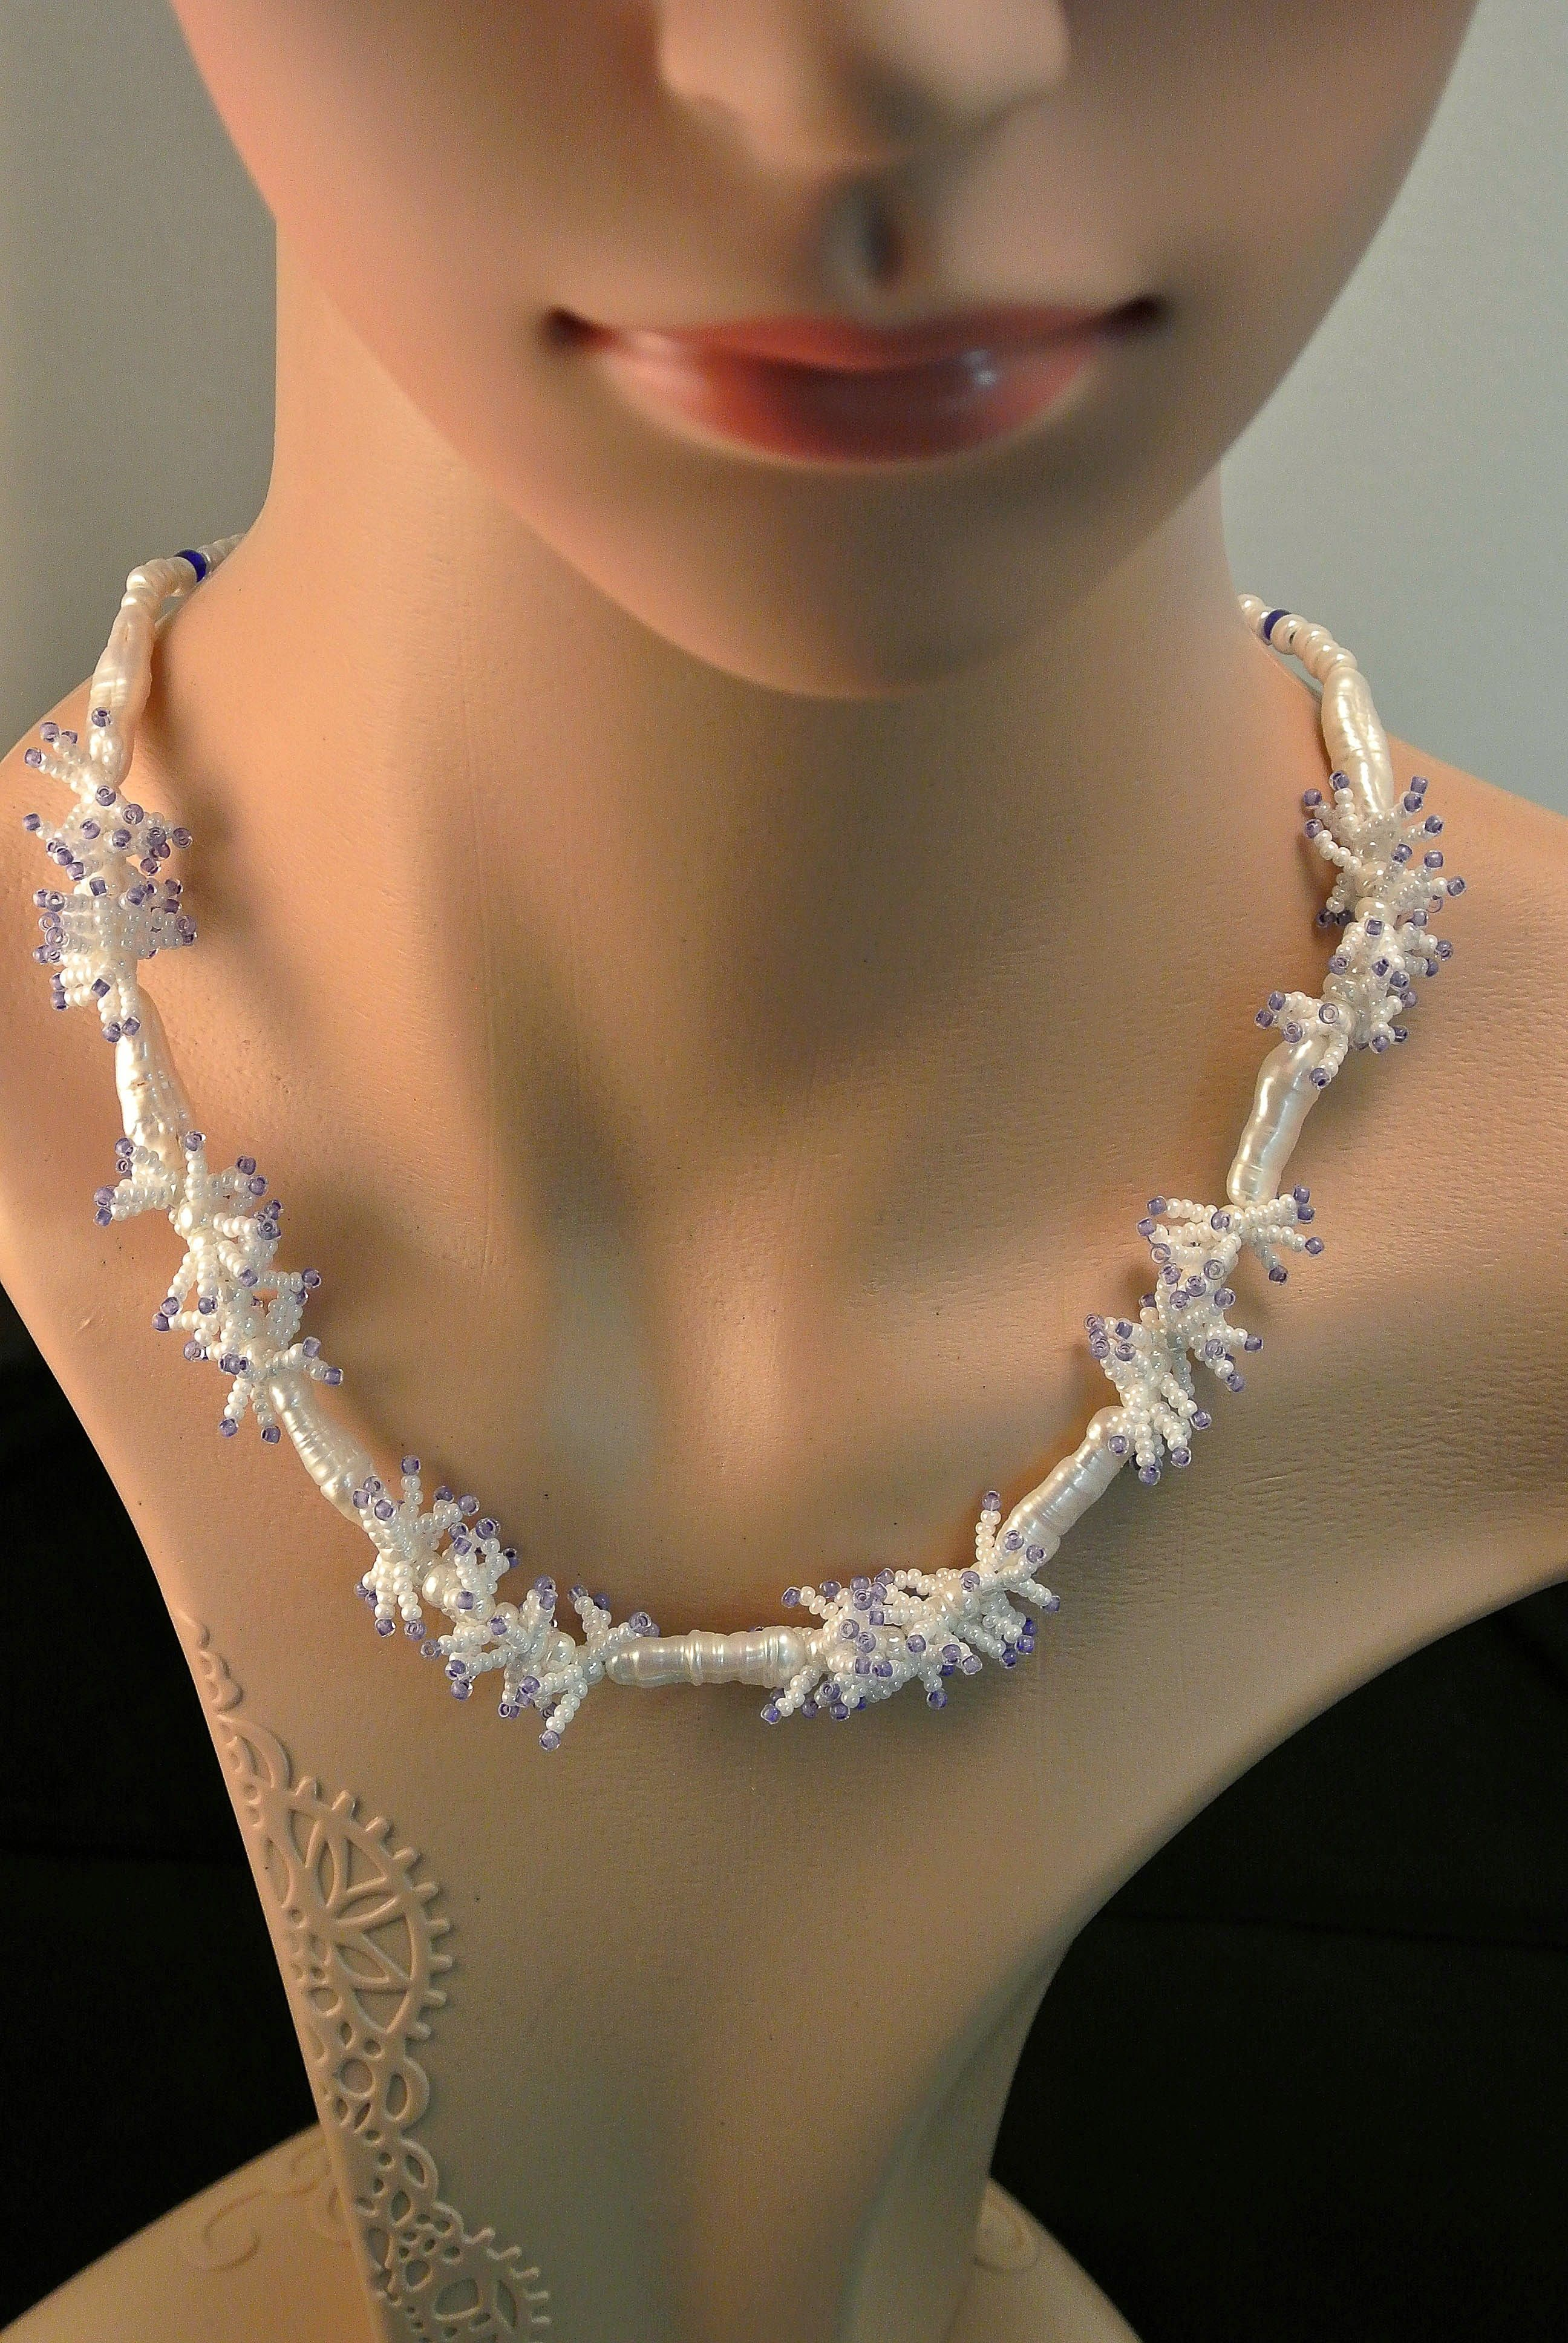 Necklace made from fresh water pearls separated by clusters of pale purple and white Japanese beads